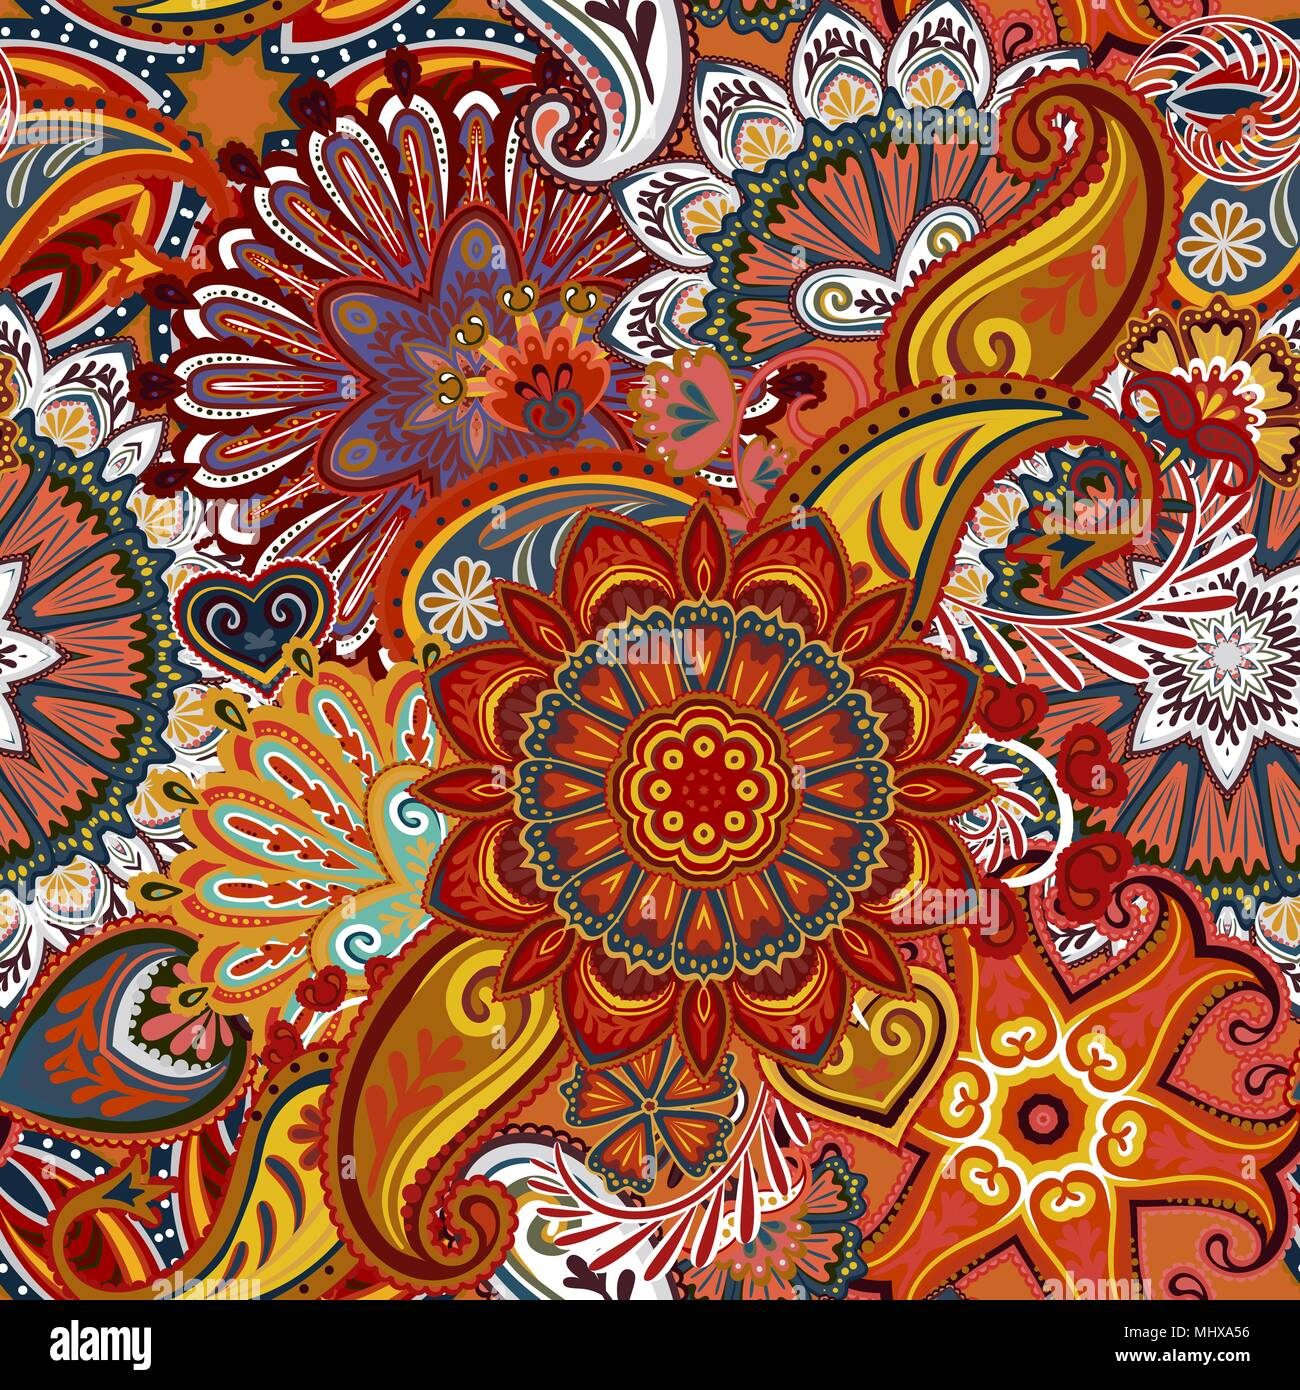 Batik Motif Stock Photos Batik Motif Stock Images Alamy